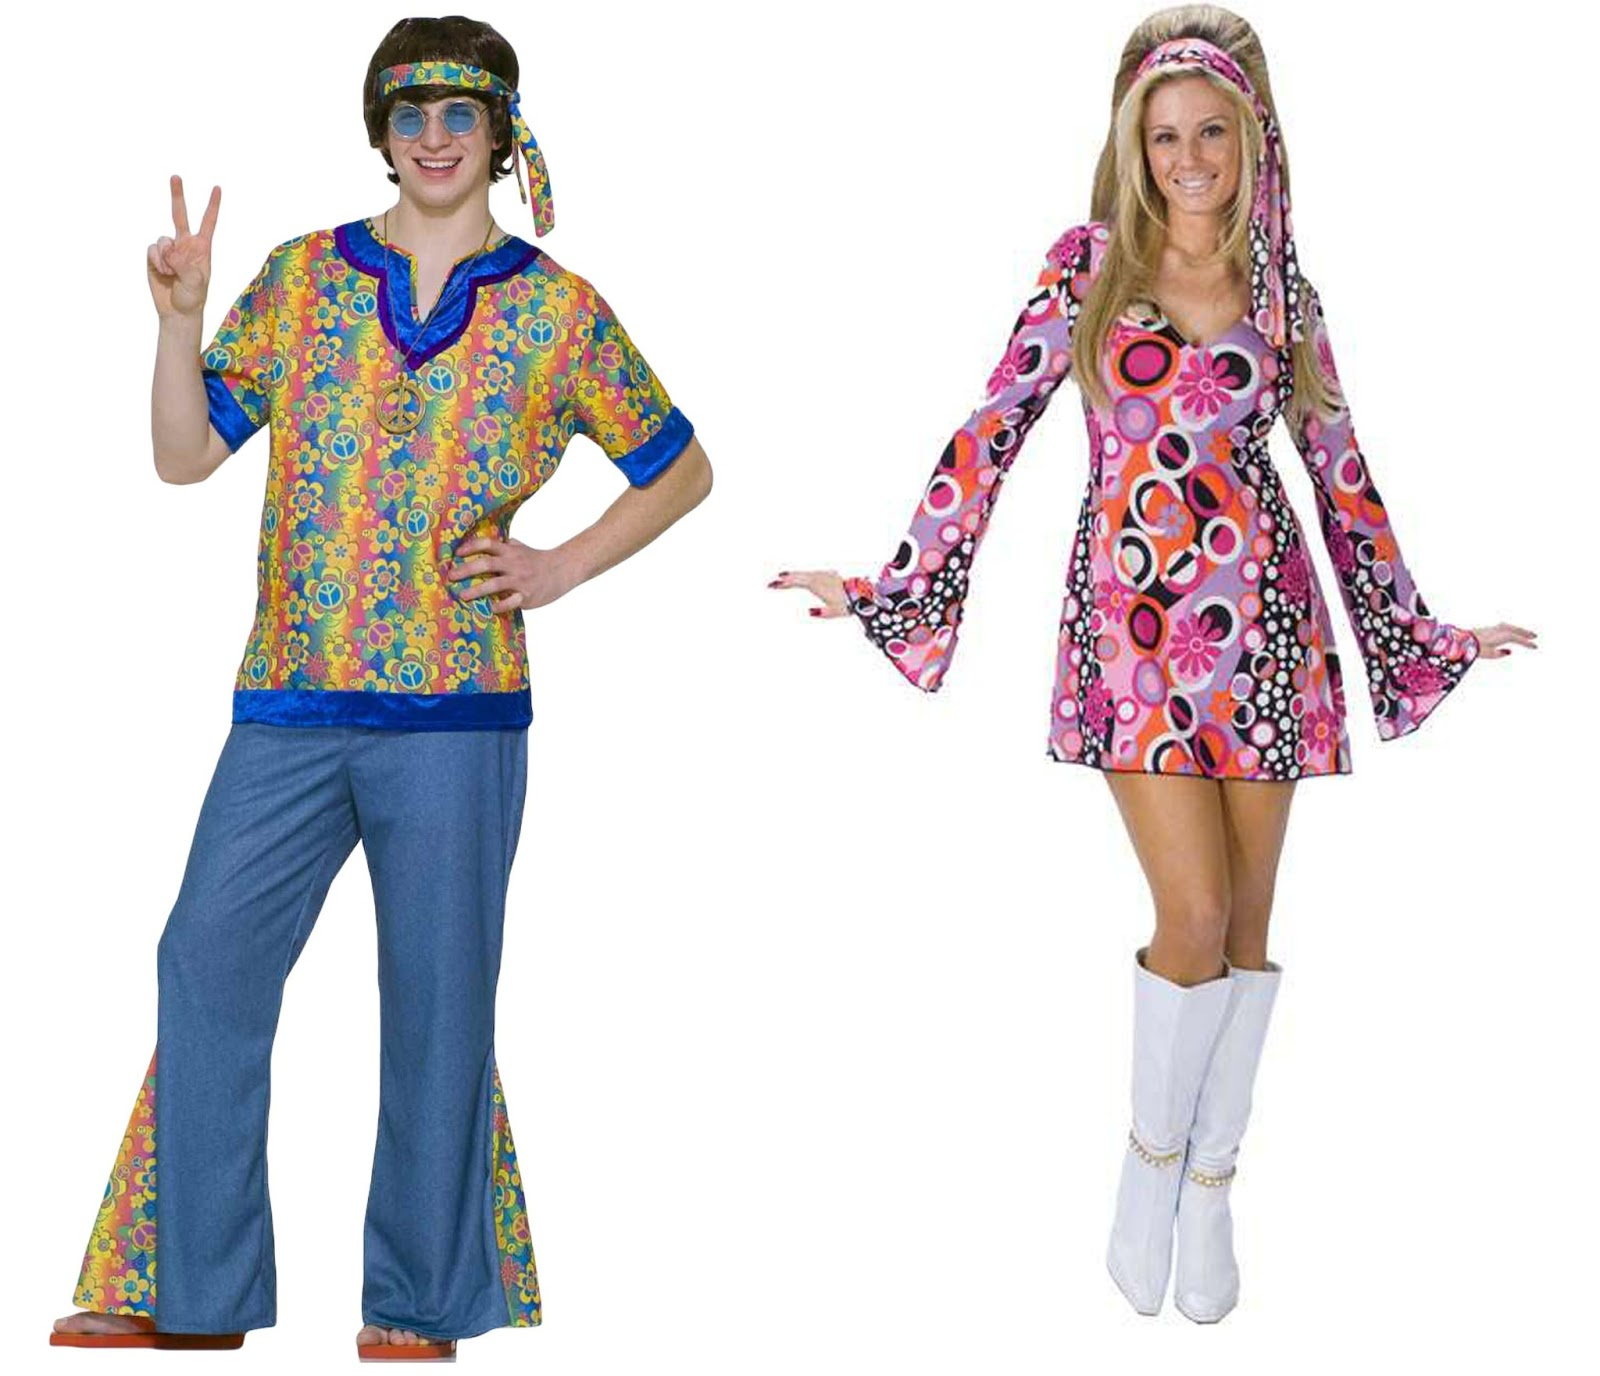 late 60s clothing for women - photo #6